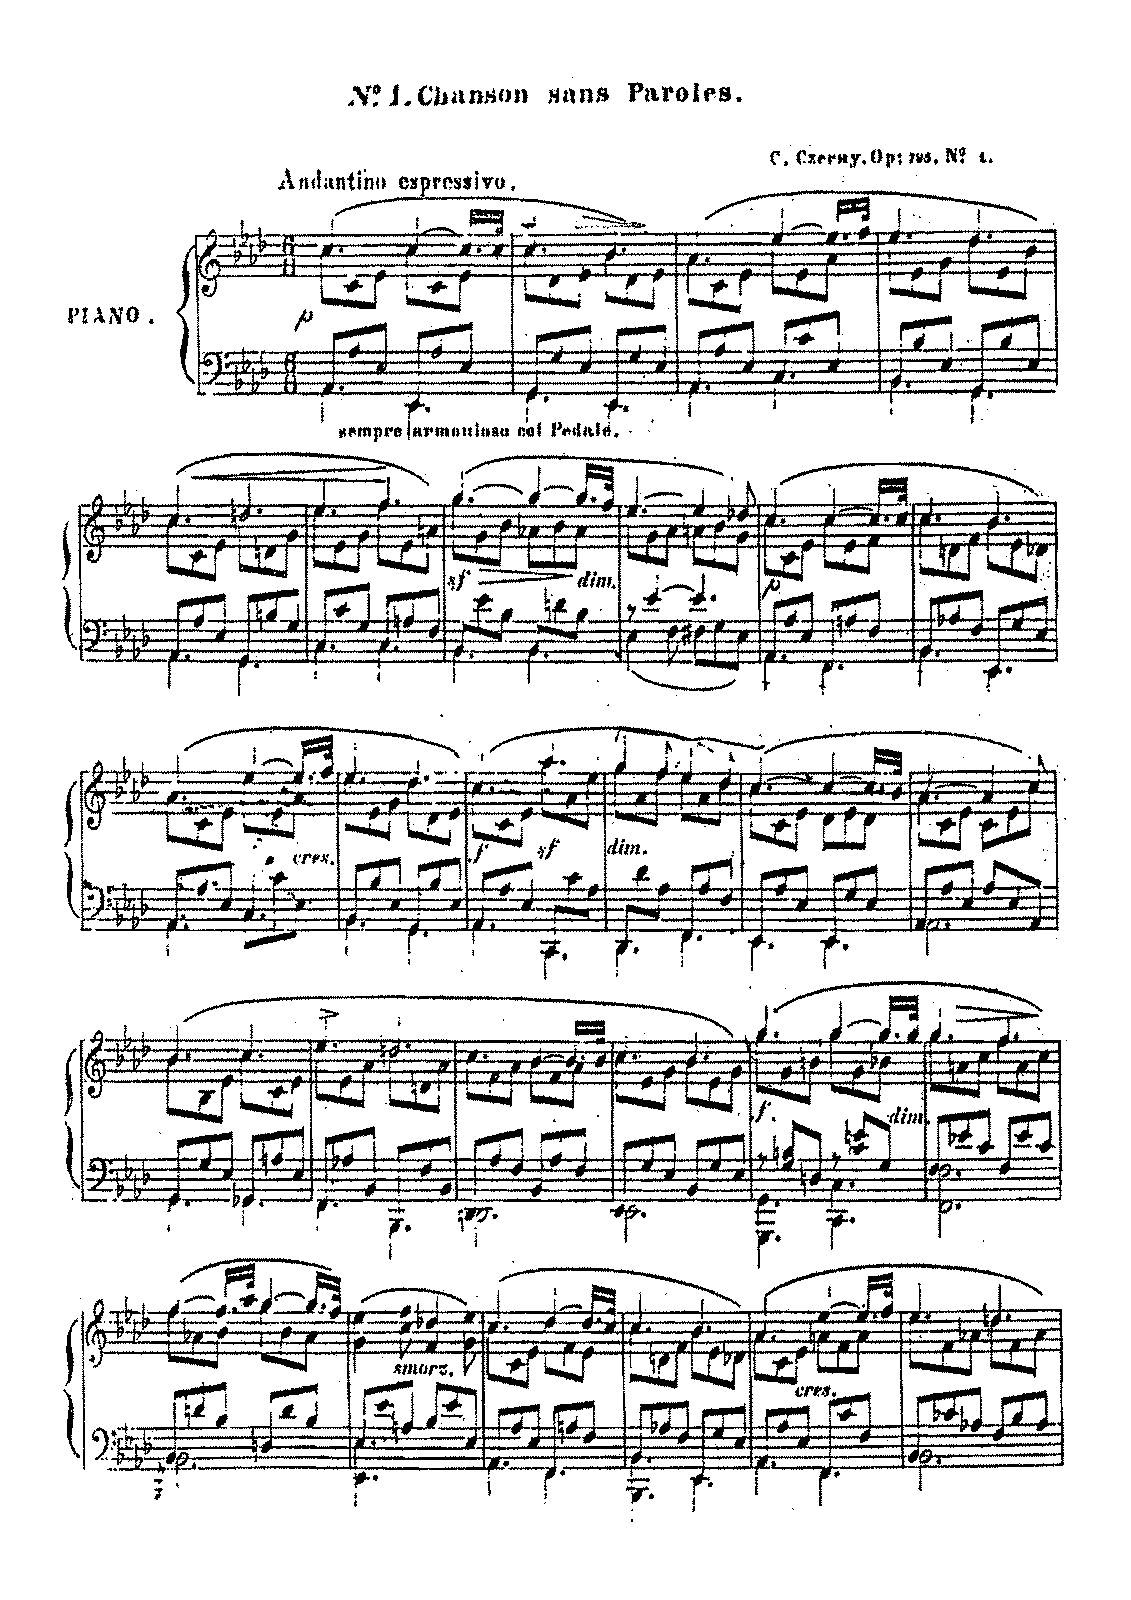 PMLP230291-Czerny - 795 8 Morceaux de Salon Op.795 No.1 Chanson sans Paroles.pdf